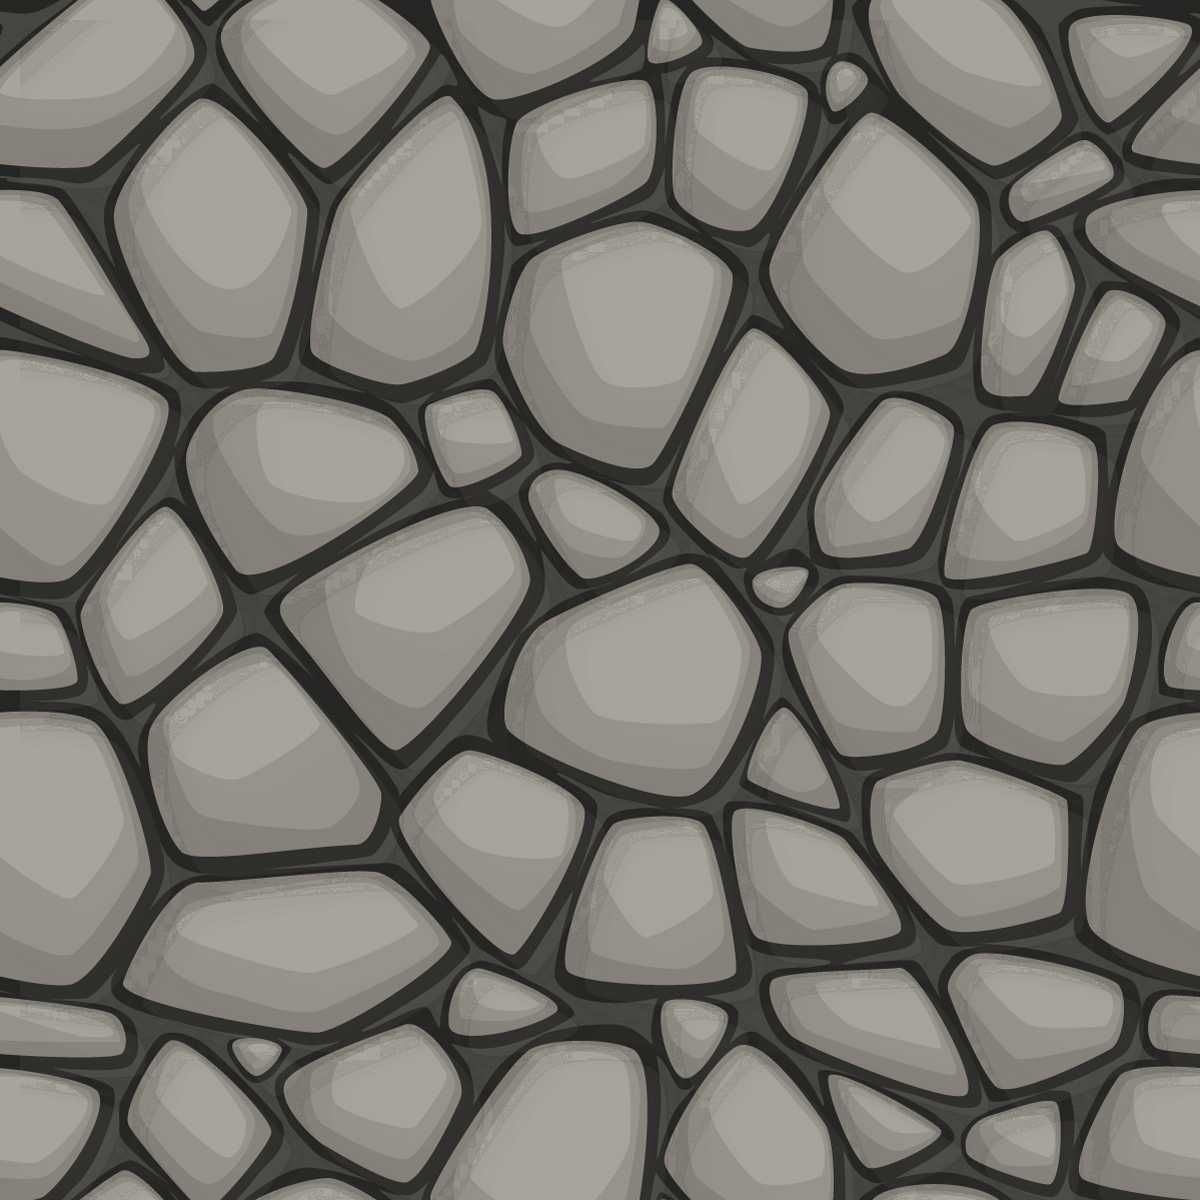 Cracked Stone Texture Vector at GetDrawings com | Free for